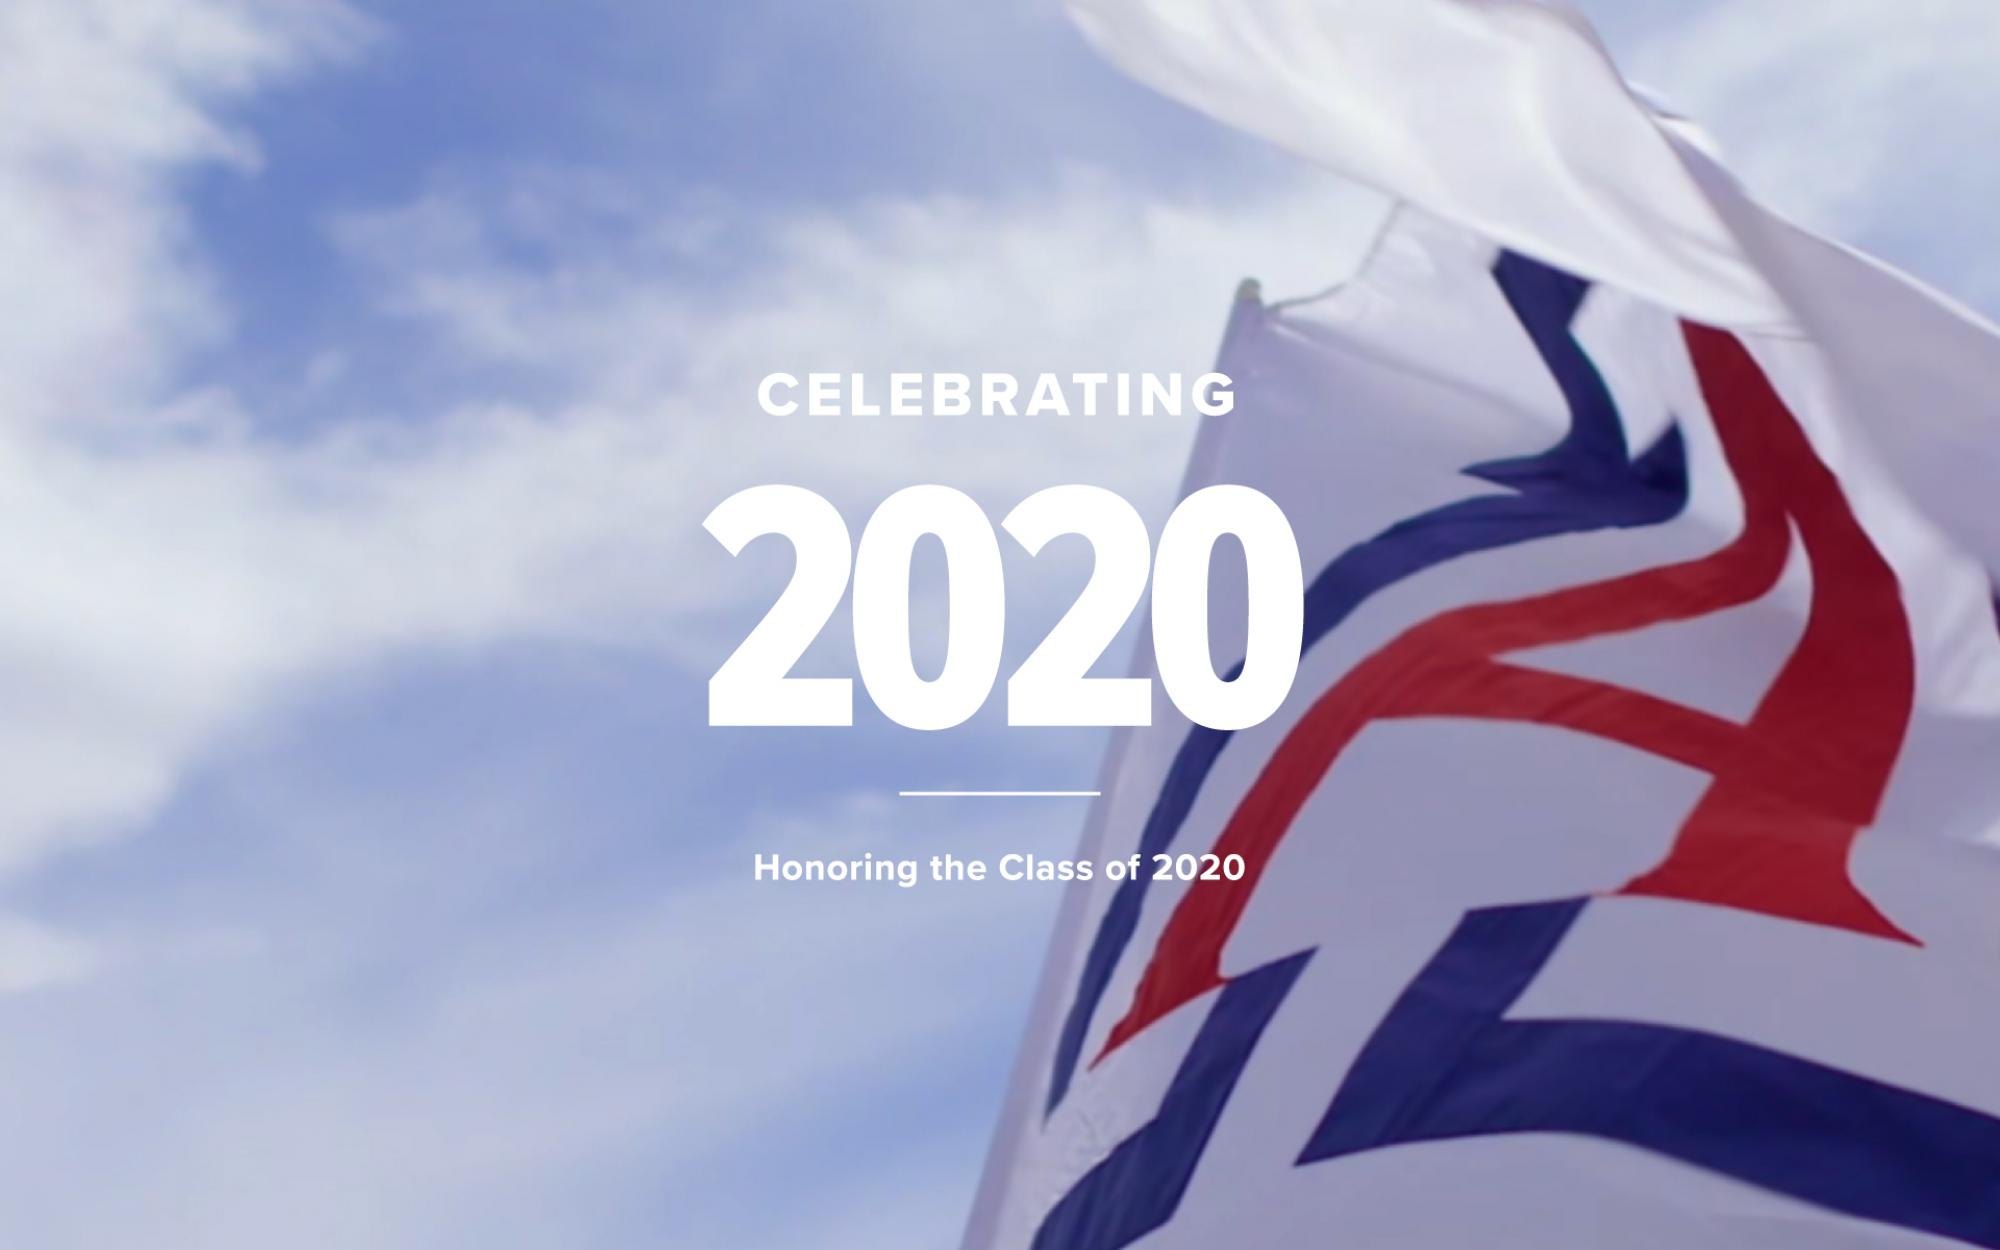 Celebrating 2020 text over picture of a flag and blue sky